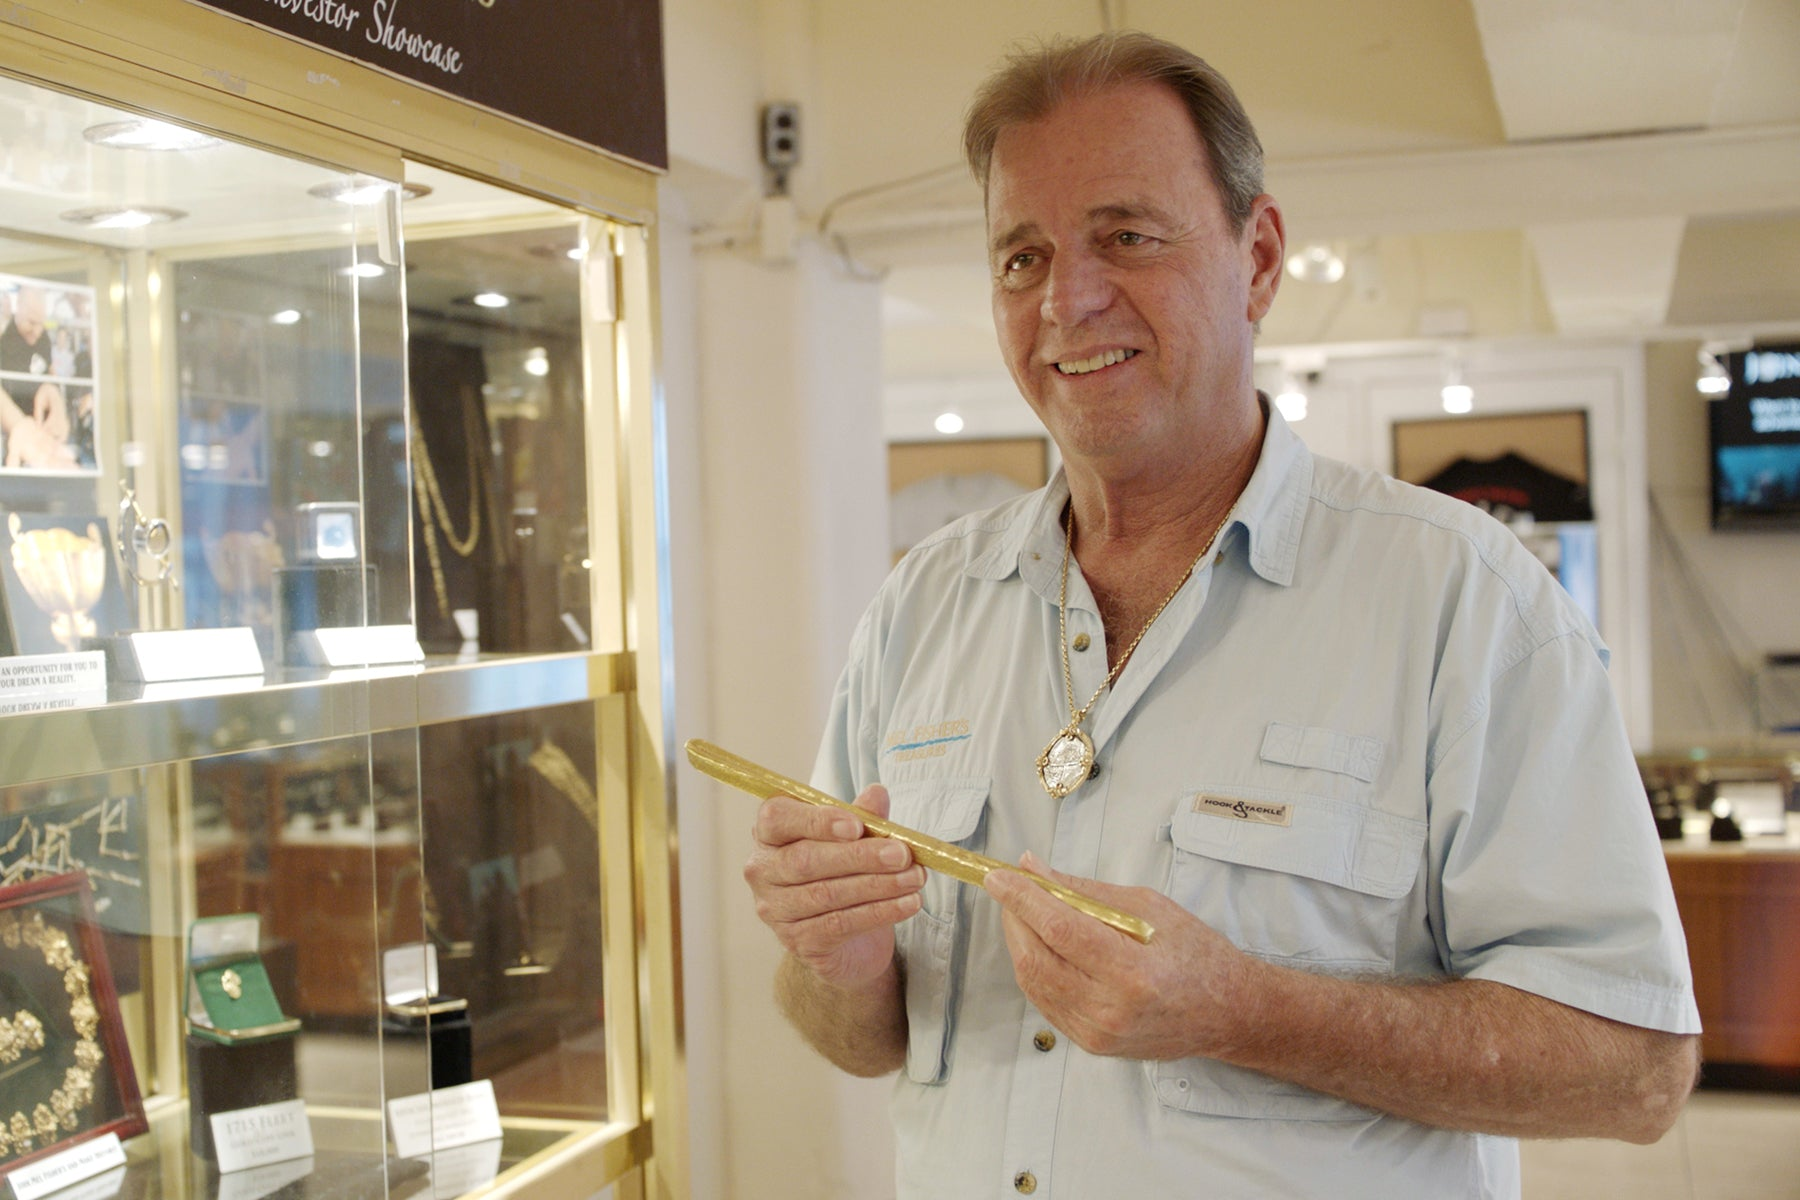 Kim Fisher, who operates Mel Fisher's Treasures in Key West, Florida holding a gold object next to a glass display cabinet filled with jewelry.